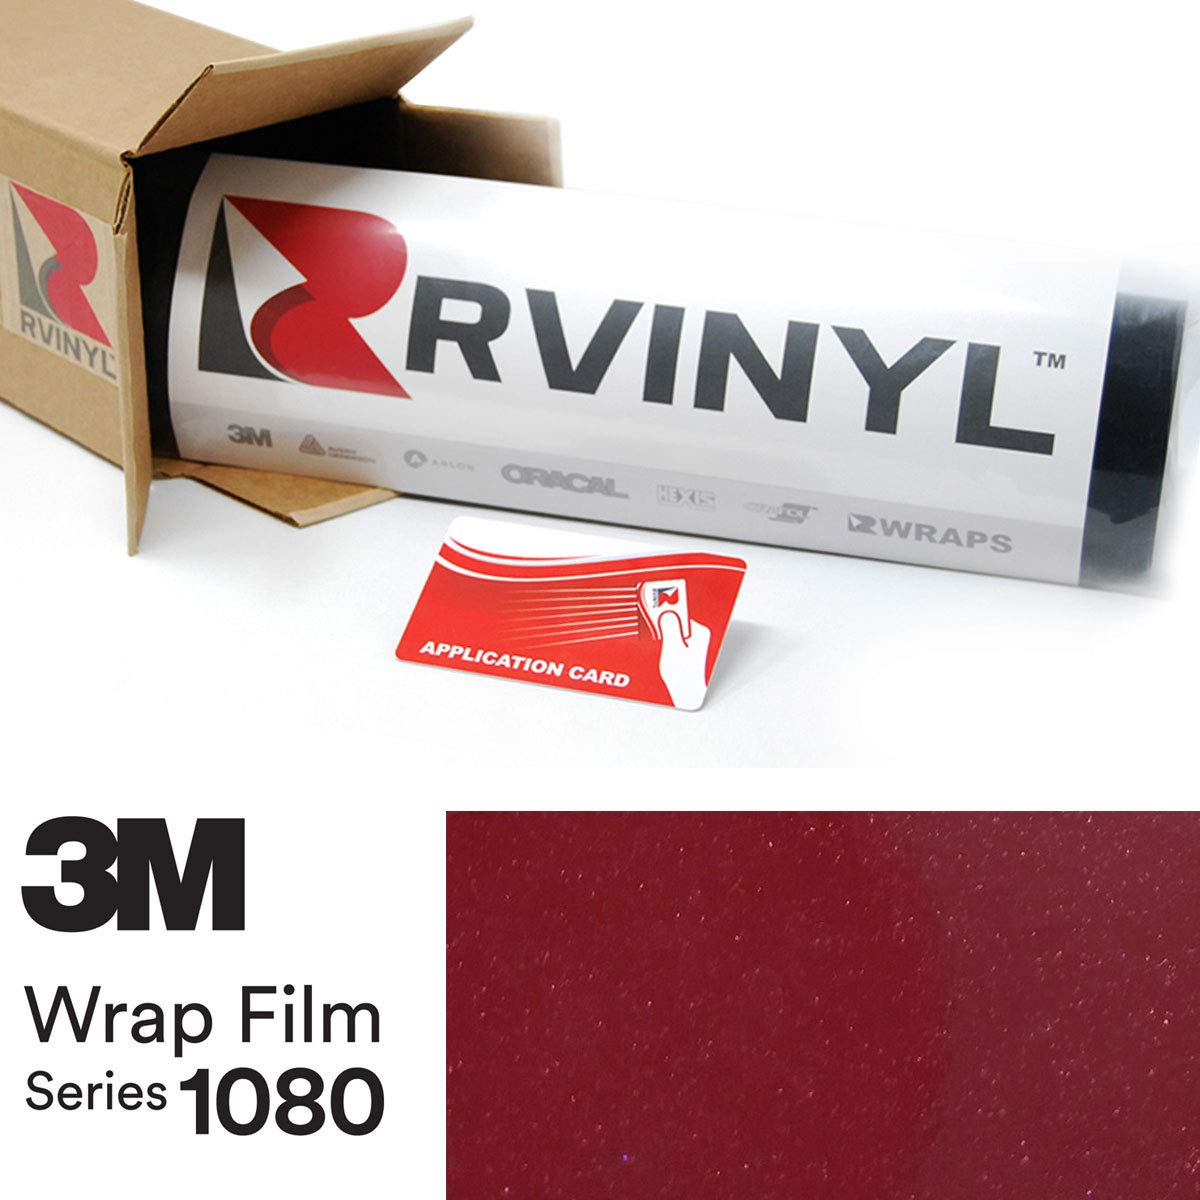 Vinyl Vehicle Car Wrap Film Sheet Roll 3M 1080 GP253 Gloss Cinder Spark RED 4in x 6in Sample Size